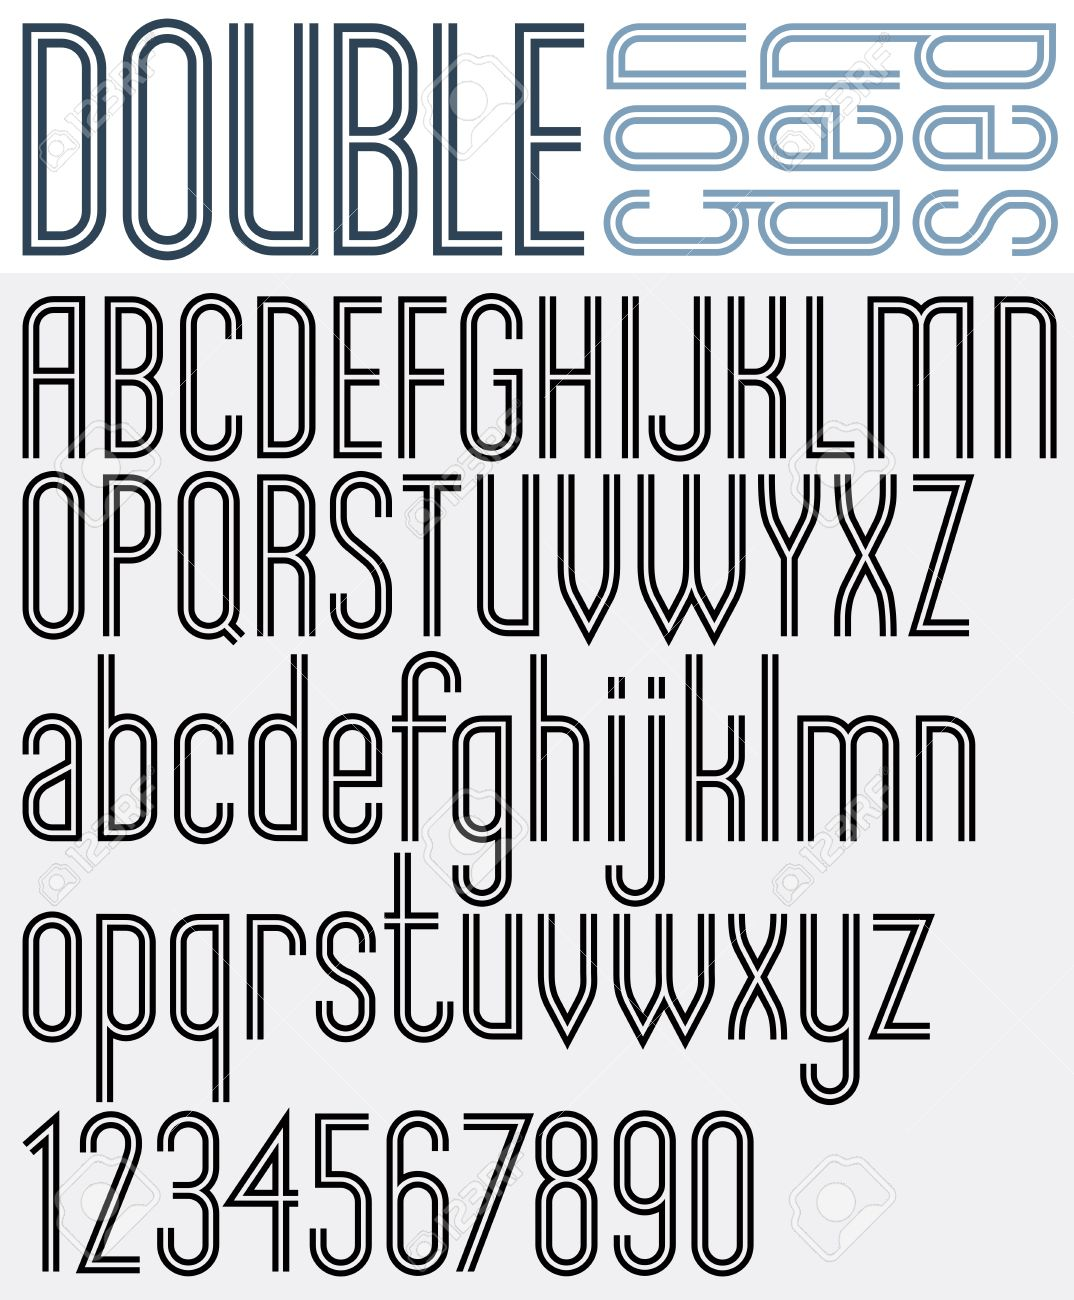 Double Line retro style geometric font, light condensed version,